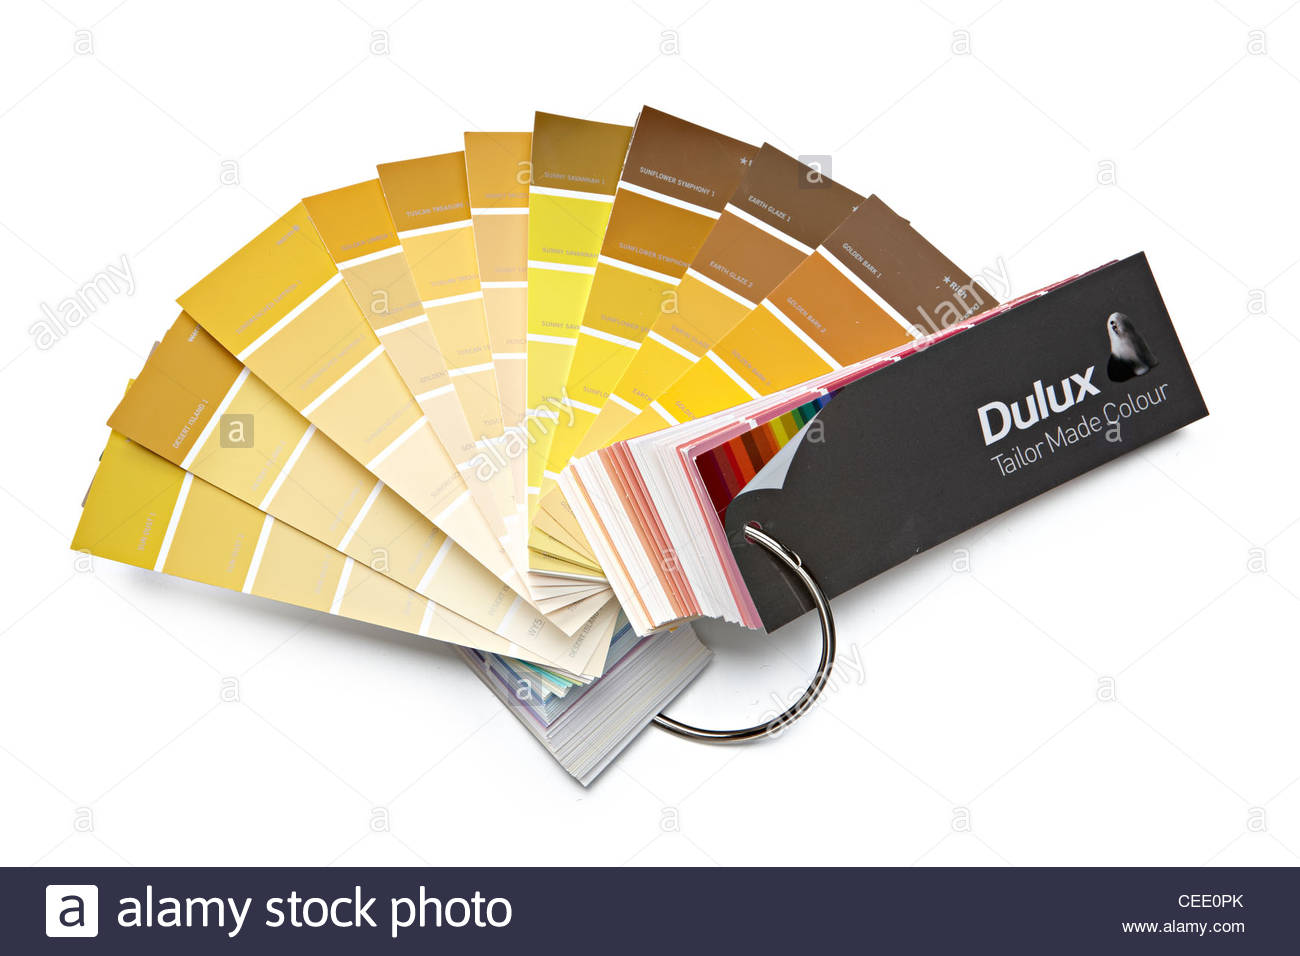 Fanned out paint chart color swatches dulux stock photo 43333883 fanned out paint chart color swatches dulux geenschuldenfo Choice Image